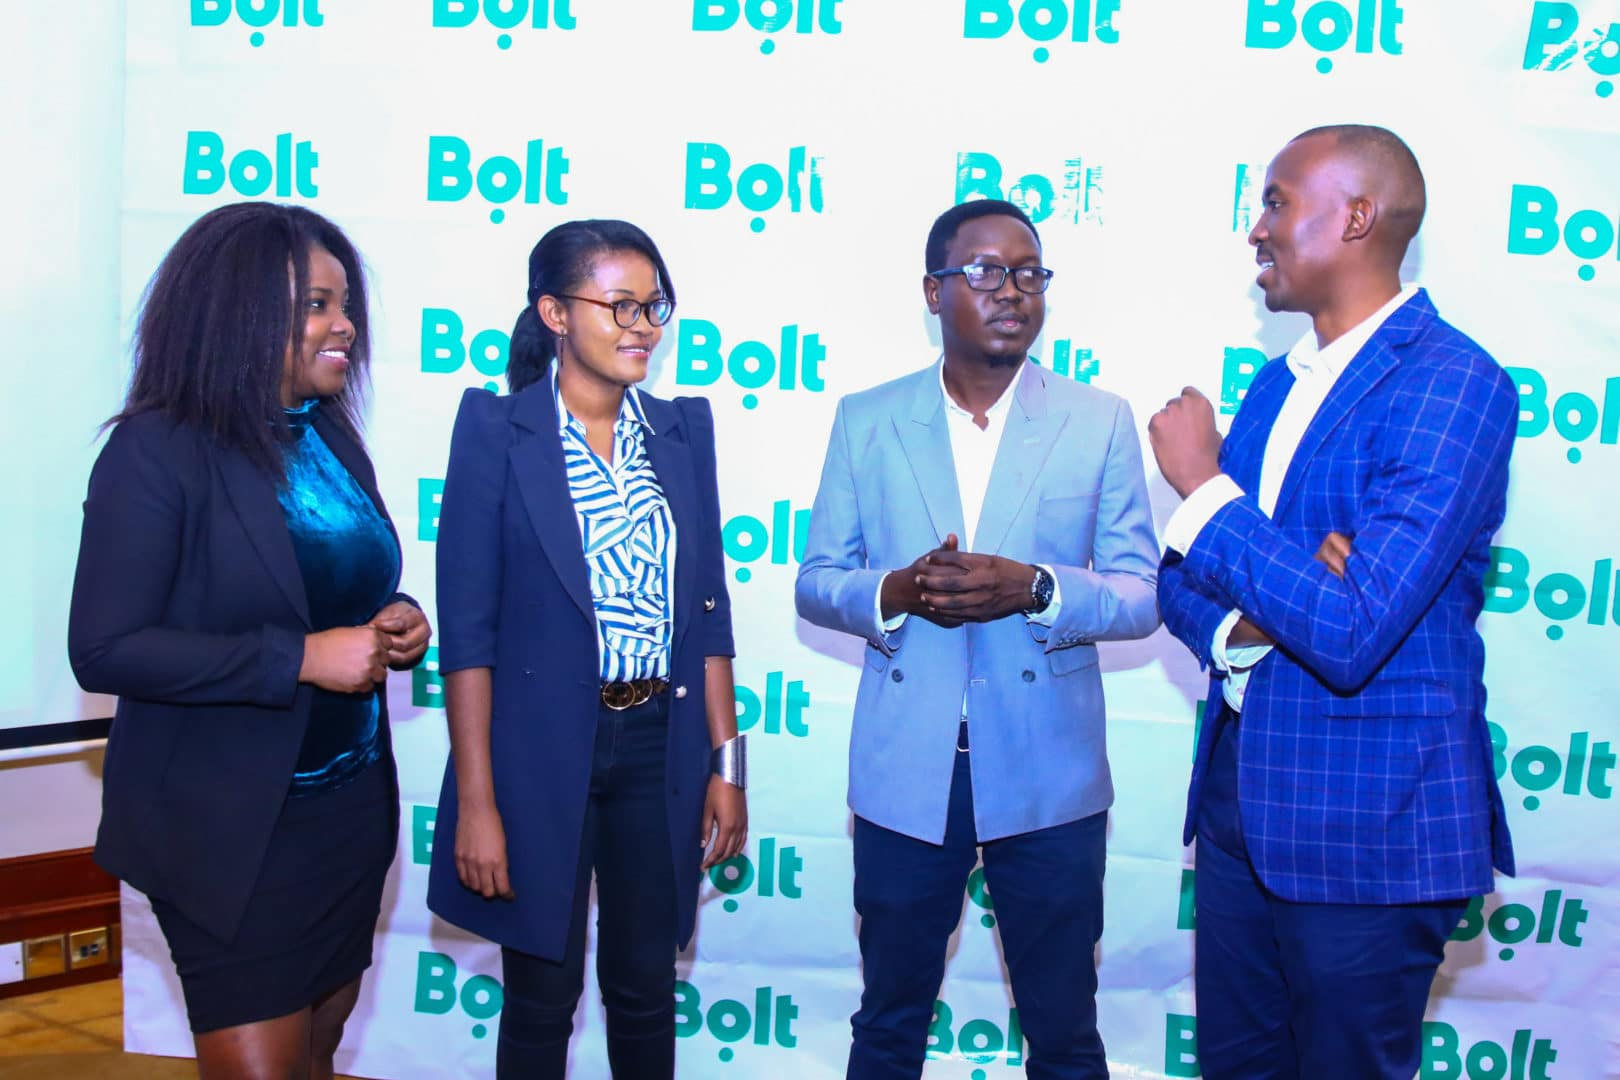 Bolt expands across major cities in Kenya